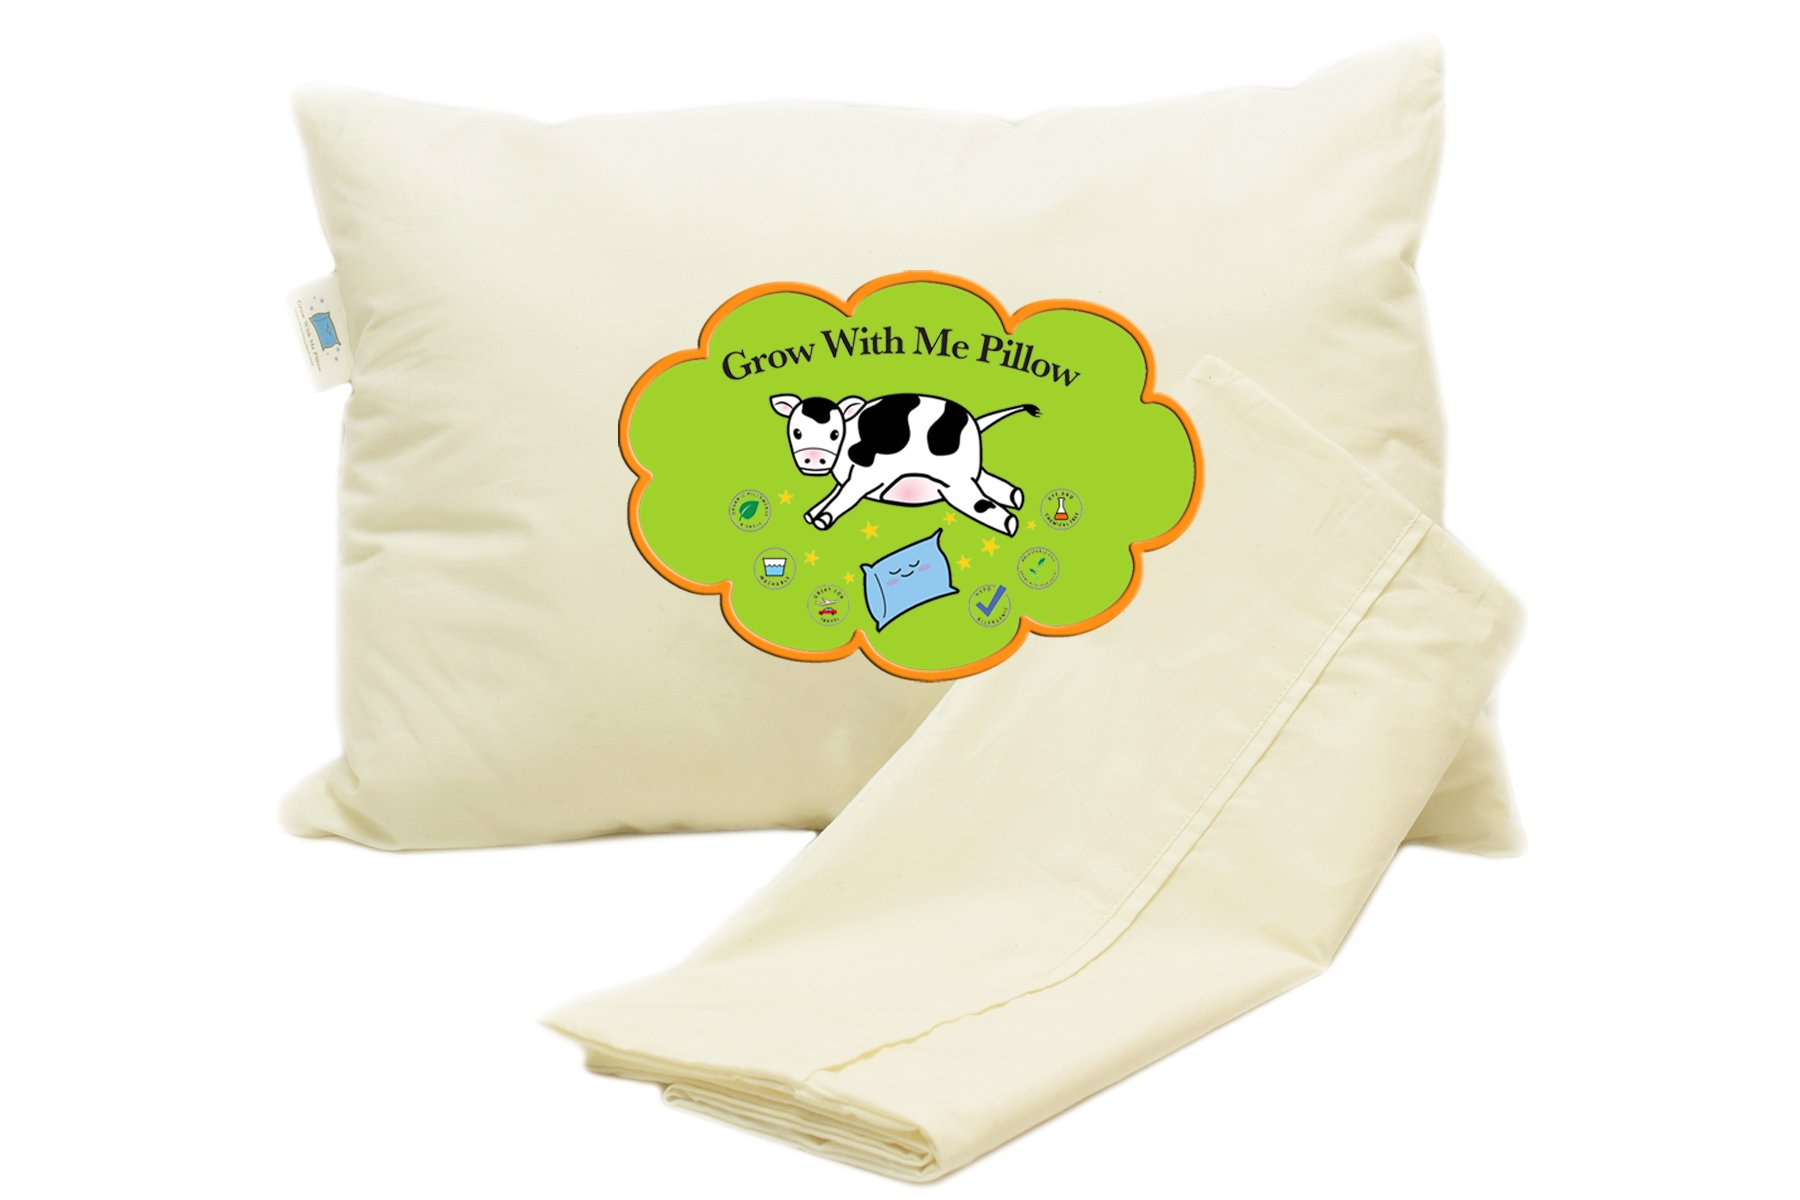 Grow With Me Pillow Adjustable Comfort Sleep System Adjustable Fill Delivers Personalized Comfort Making This The Best Toddler Pillow! Certified Organic. Chemical Free. Includes Pillow Case. 14x19